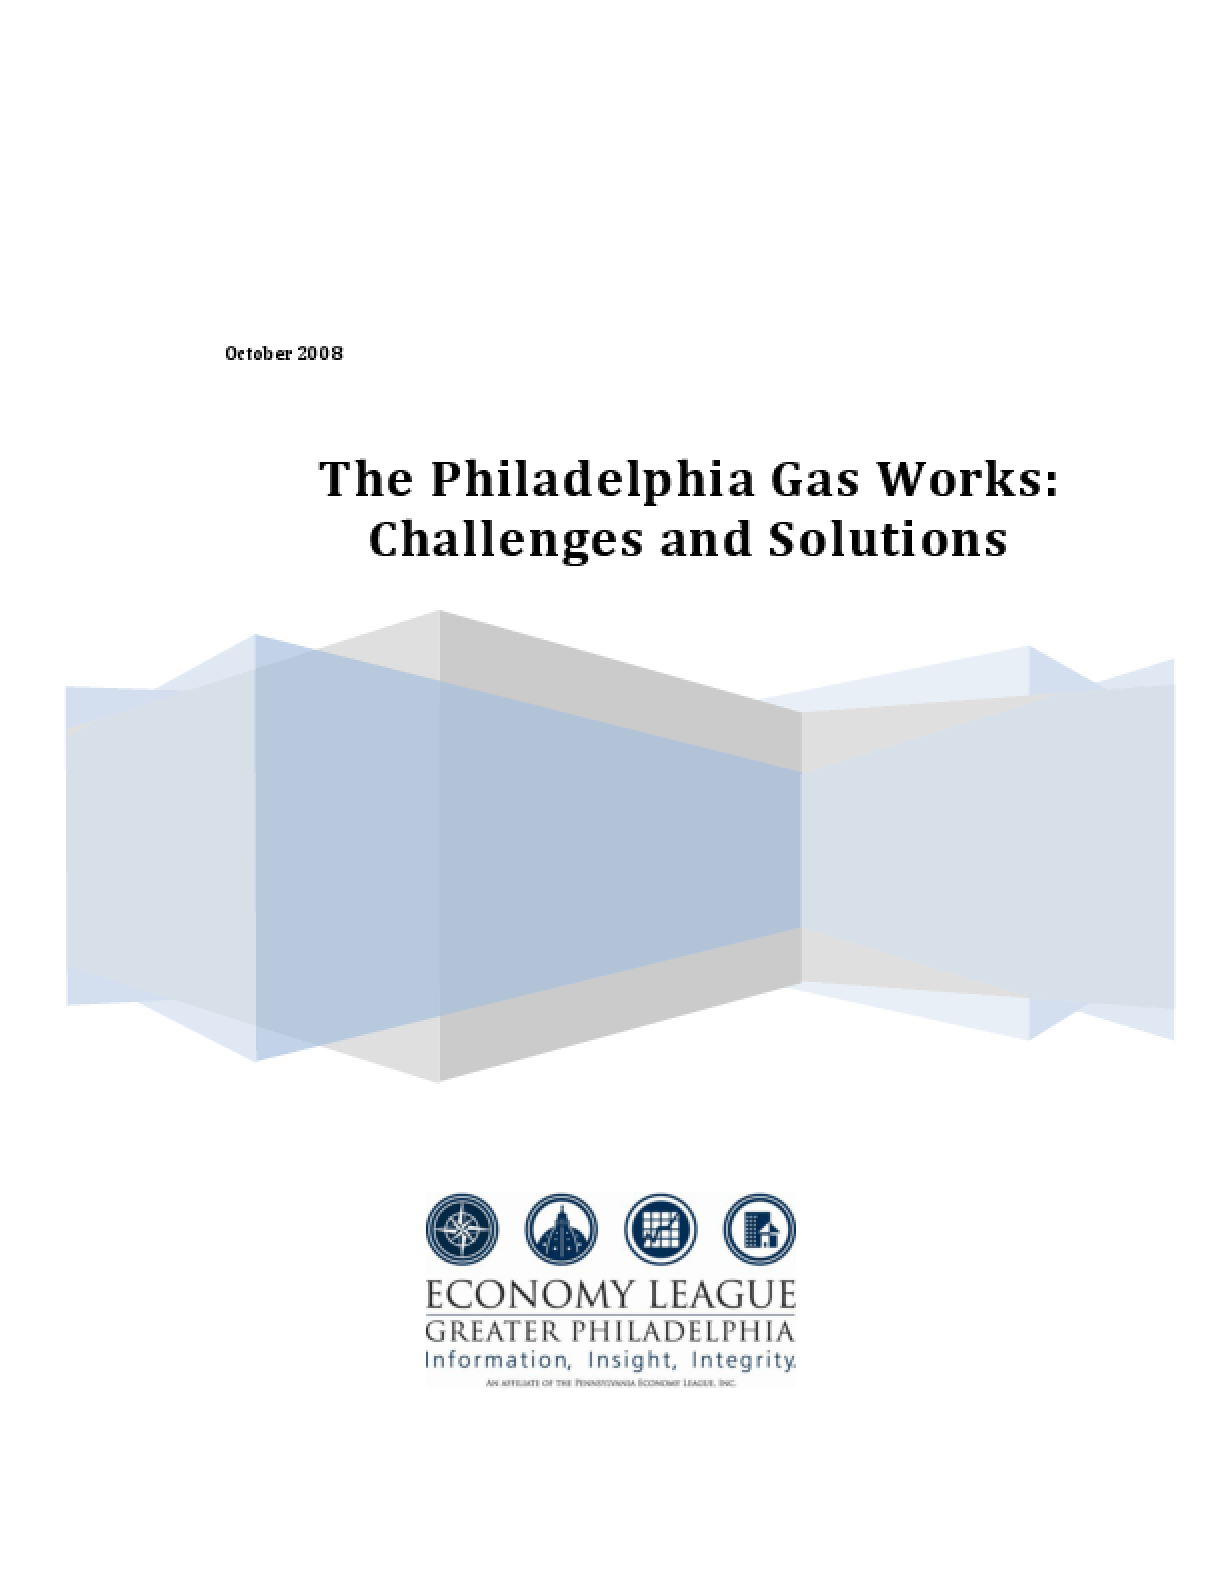 The Philadelphia Gas Works: Challenges and Solutions